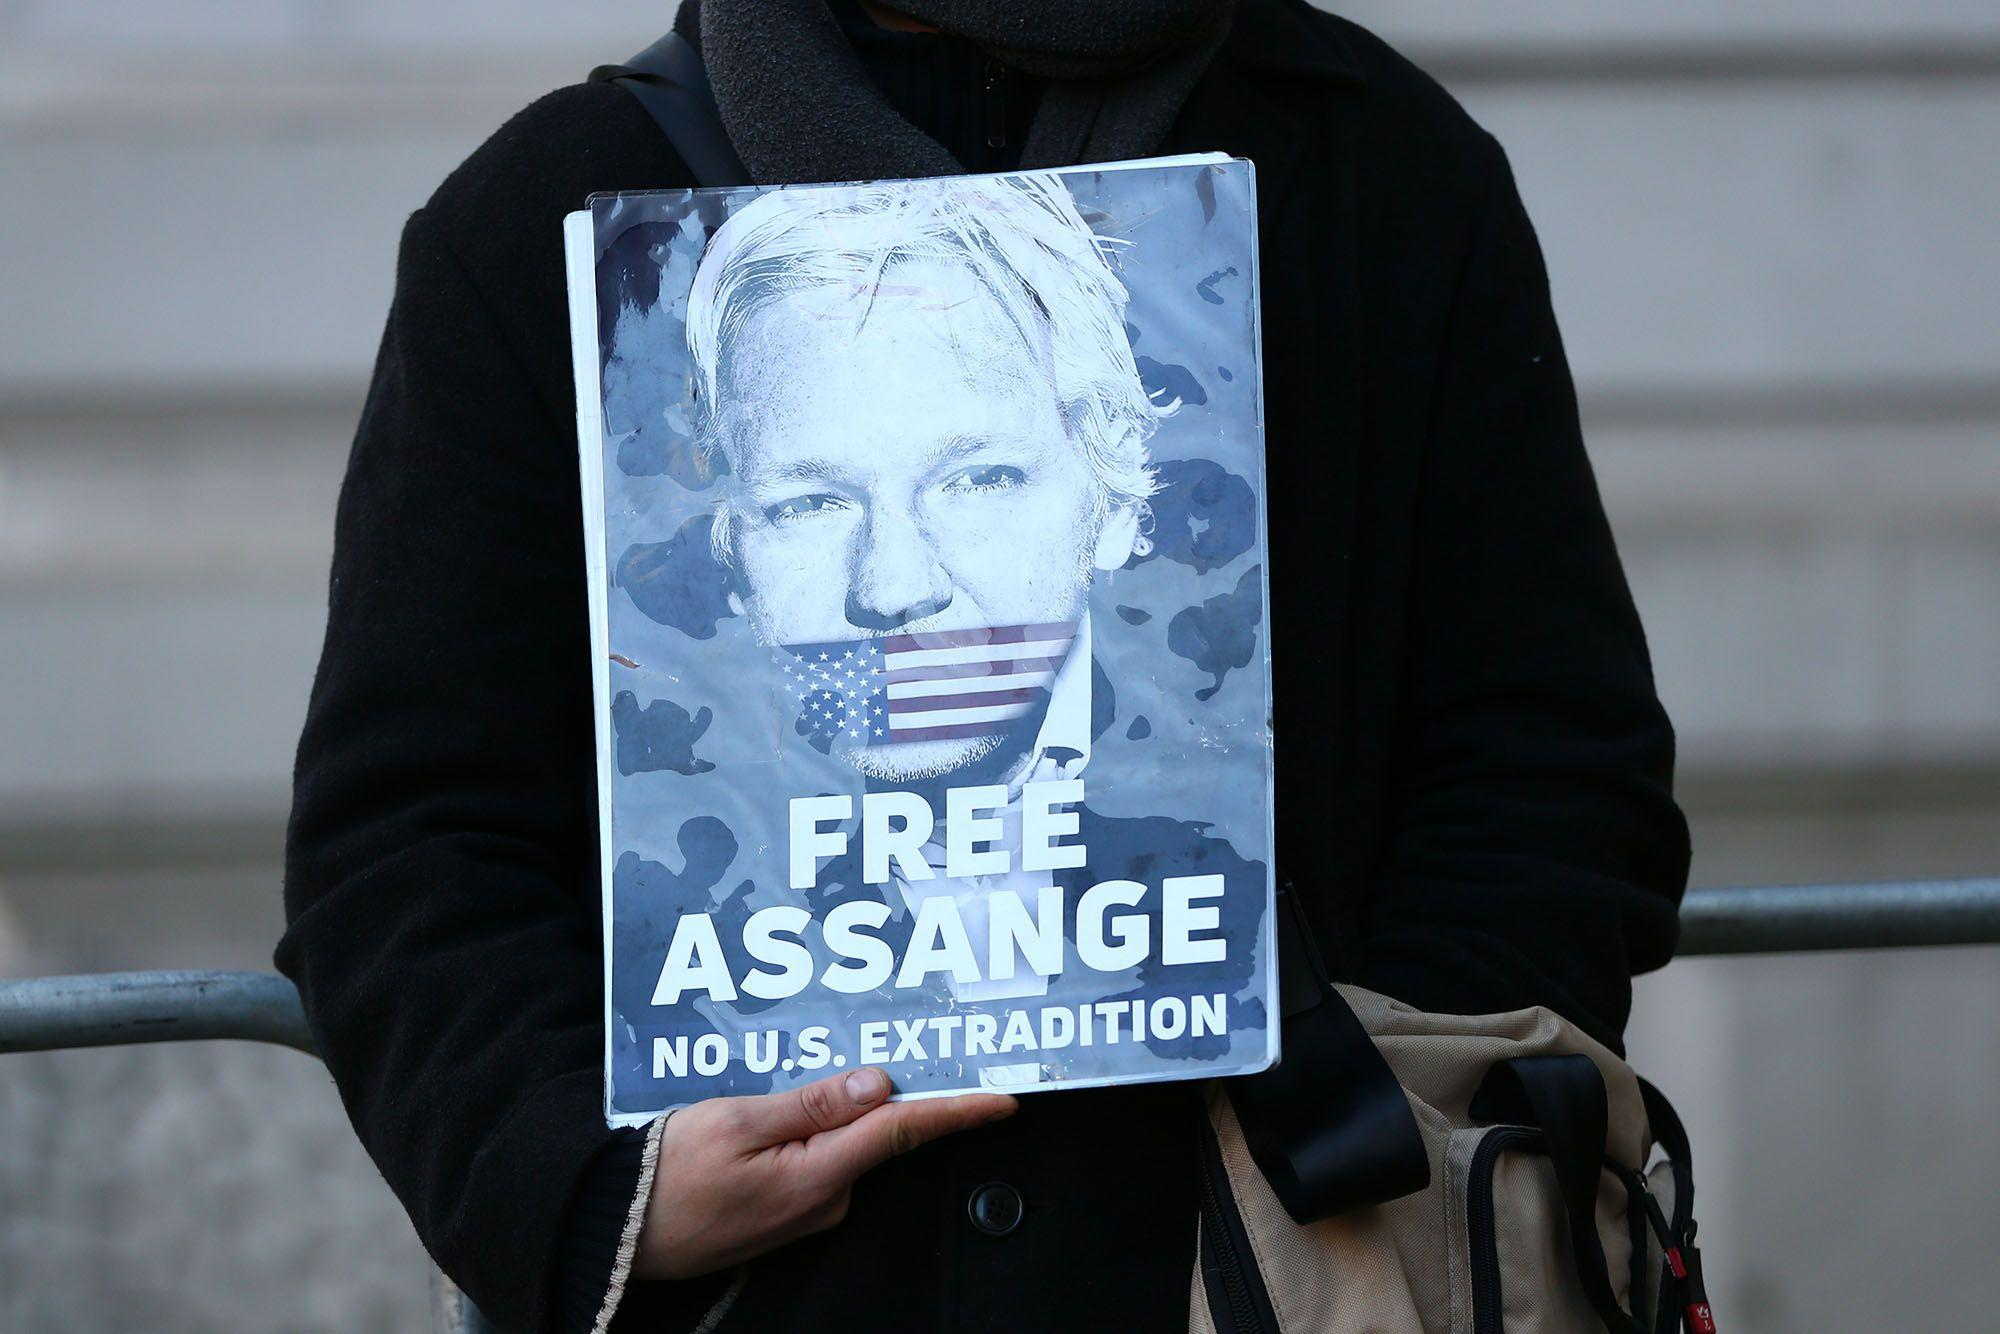 Sweden drops alleged rape investigation against Julian Assange of WikiLeaks